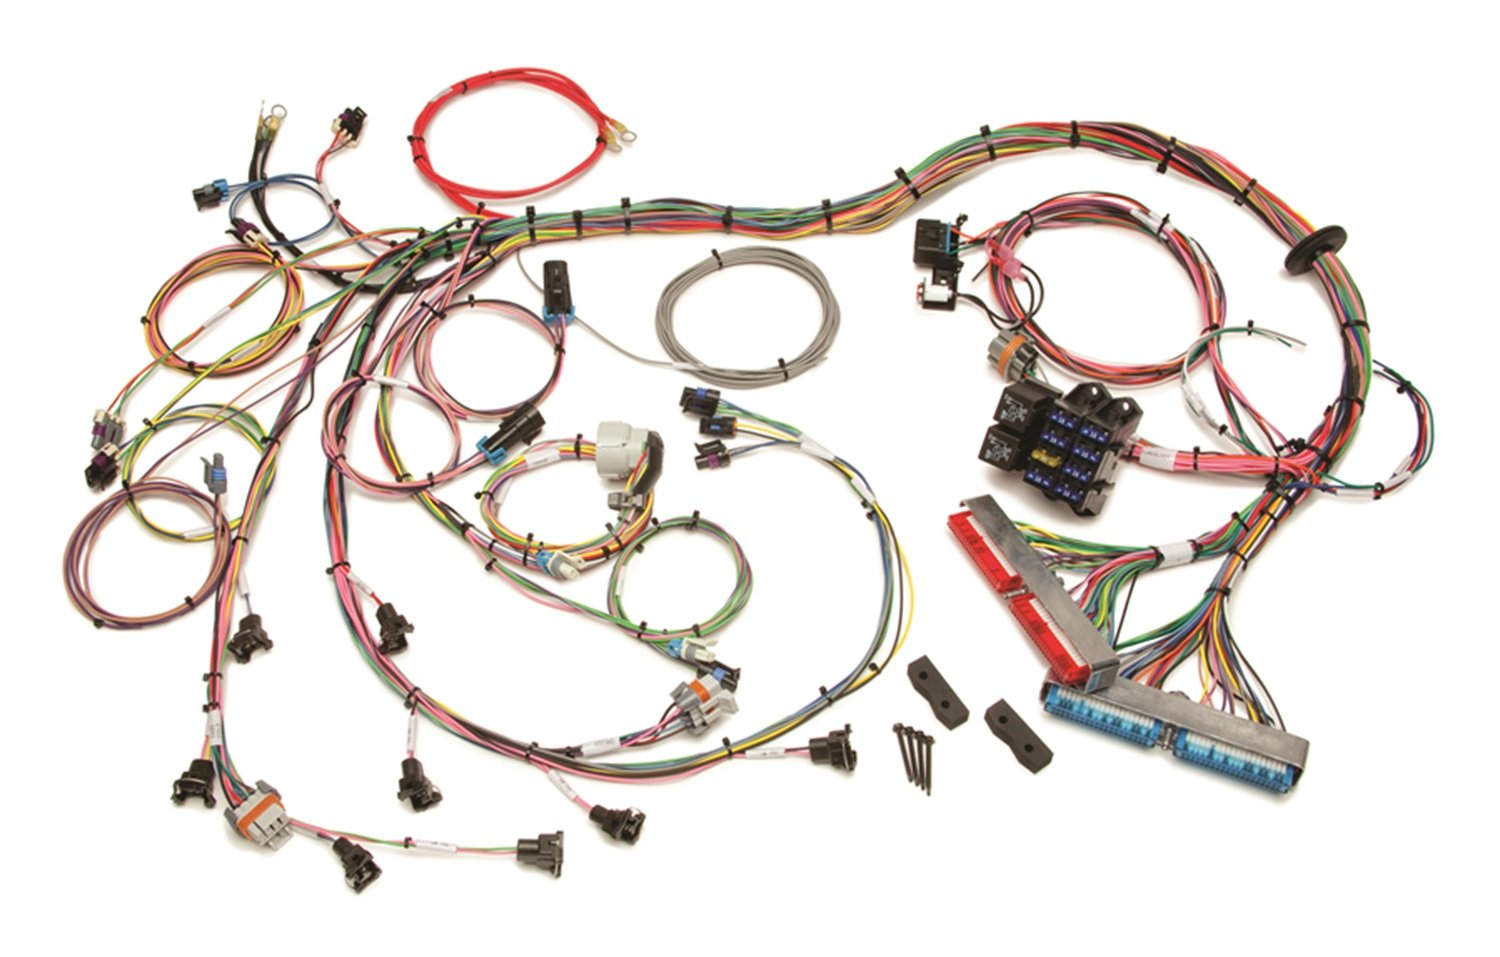 71u3GmDXDSL._SL1500_ amazon com painless 60508 fuel injection standard length wiring painless wiring harness for duramax at eliteediting.co